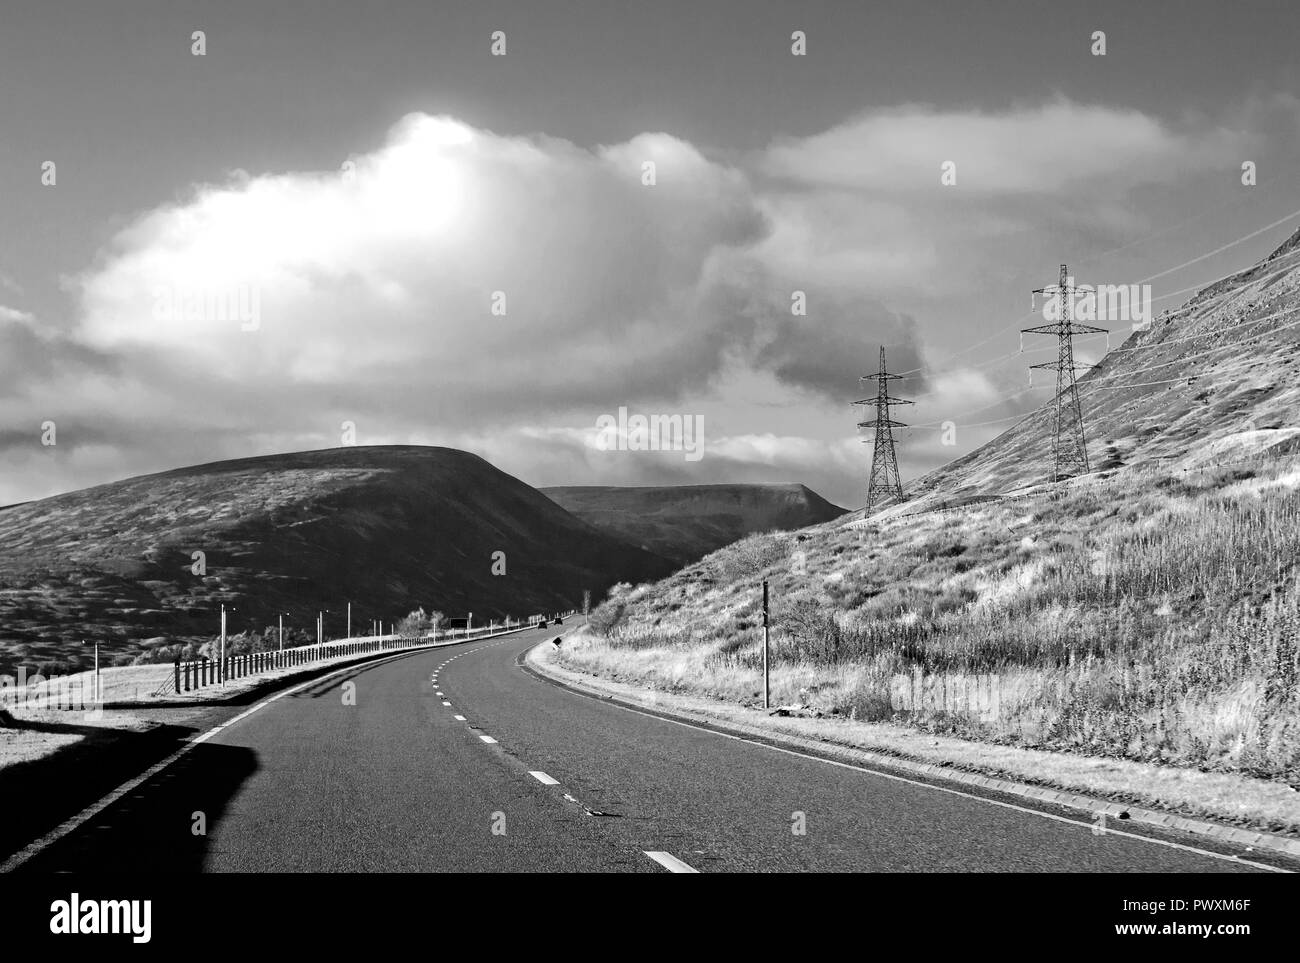 Intrusive roadside electricity pylons near the summit of Drumochter Pass on the A9 trunk road, Scottish Highlands, Scotland UK. - Stock Image